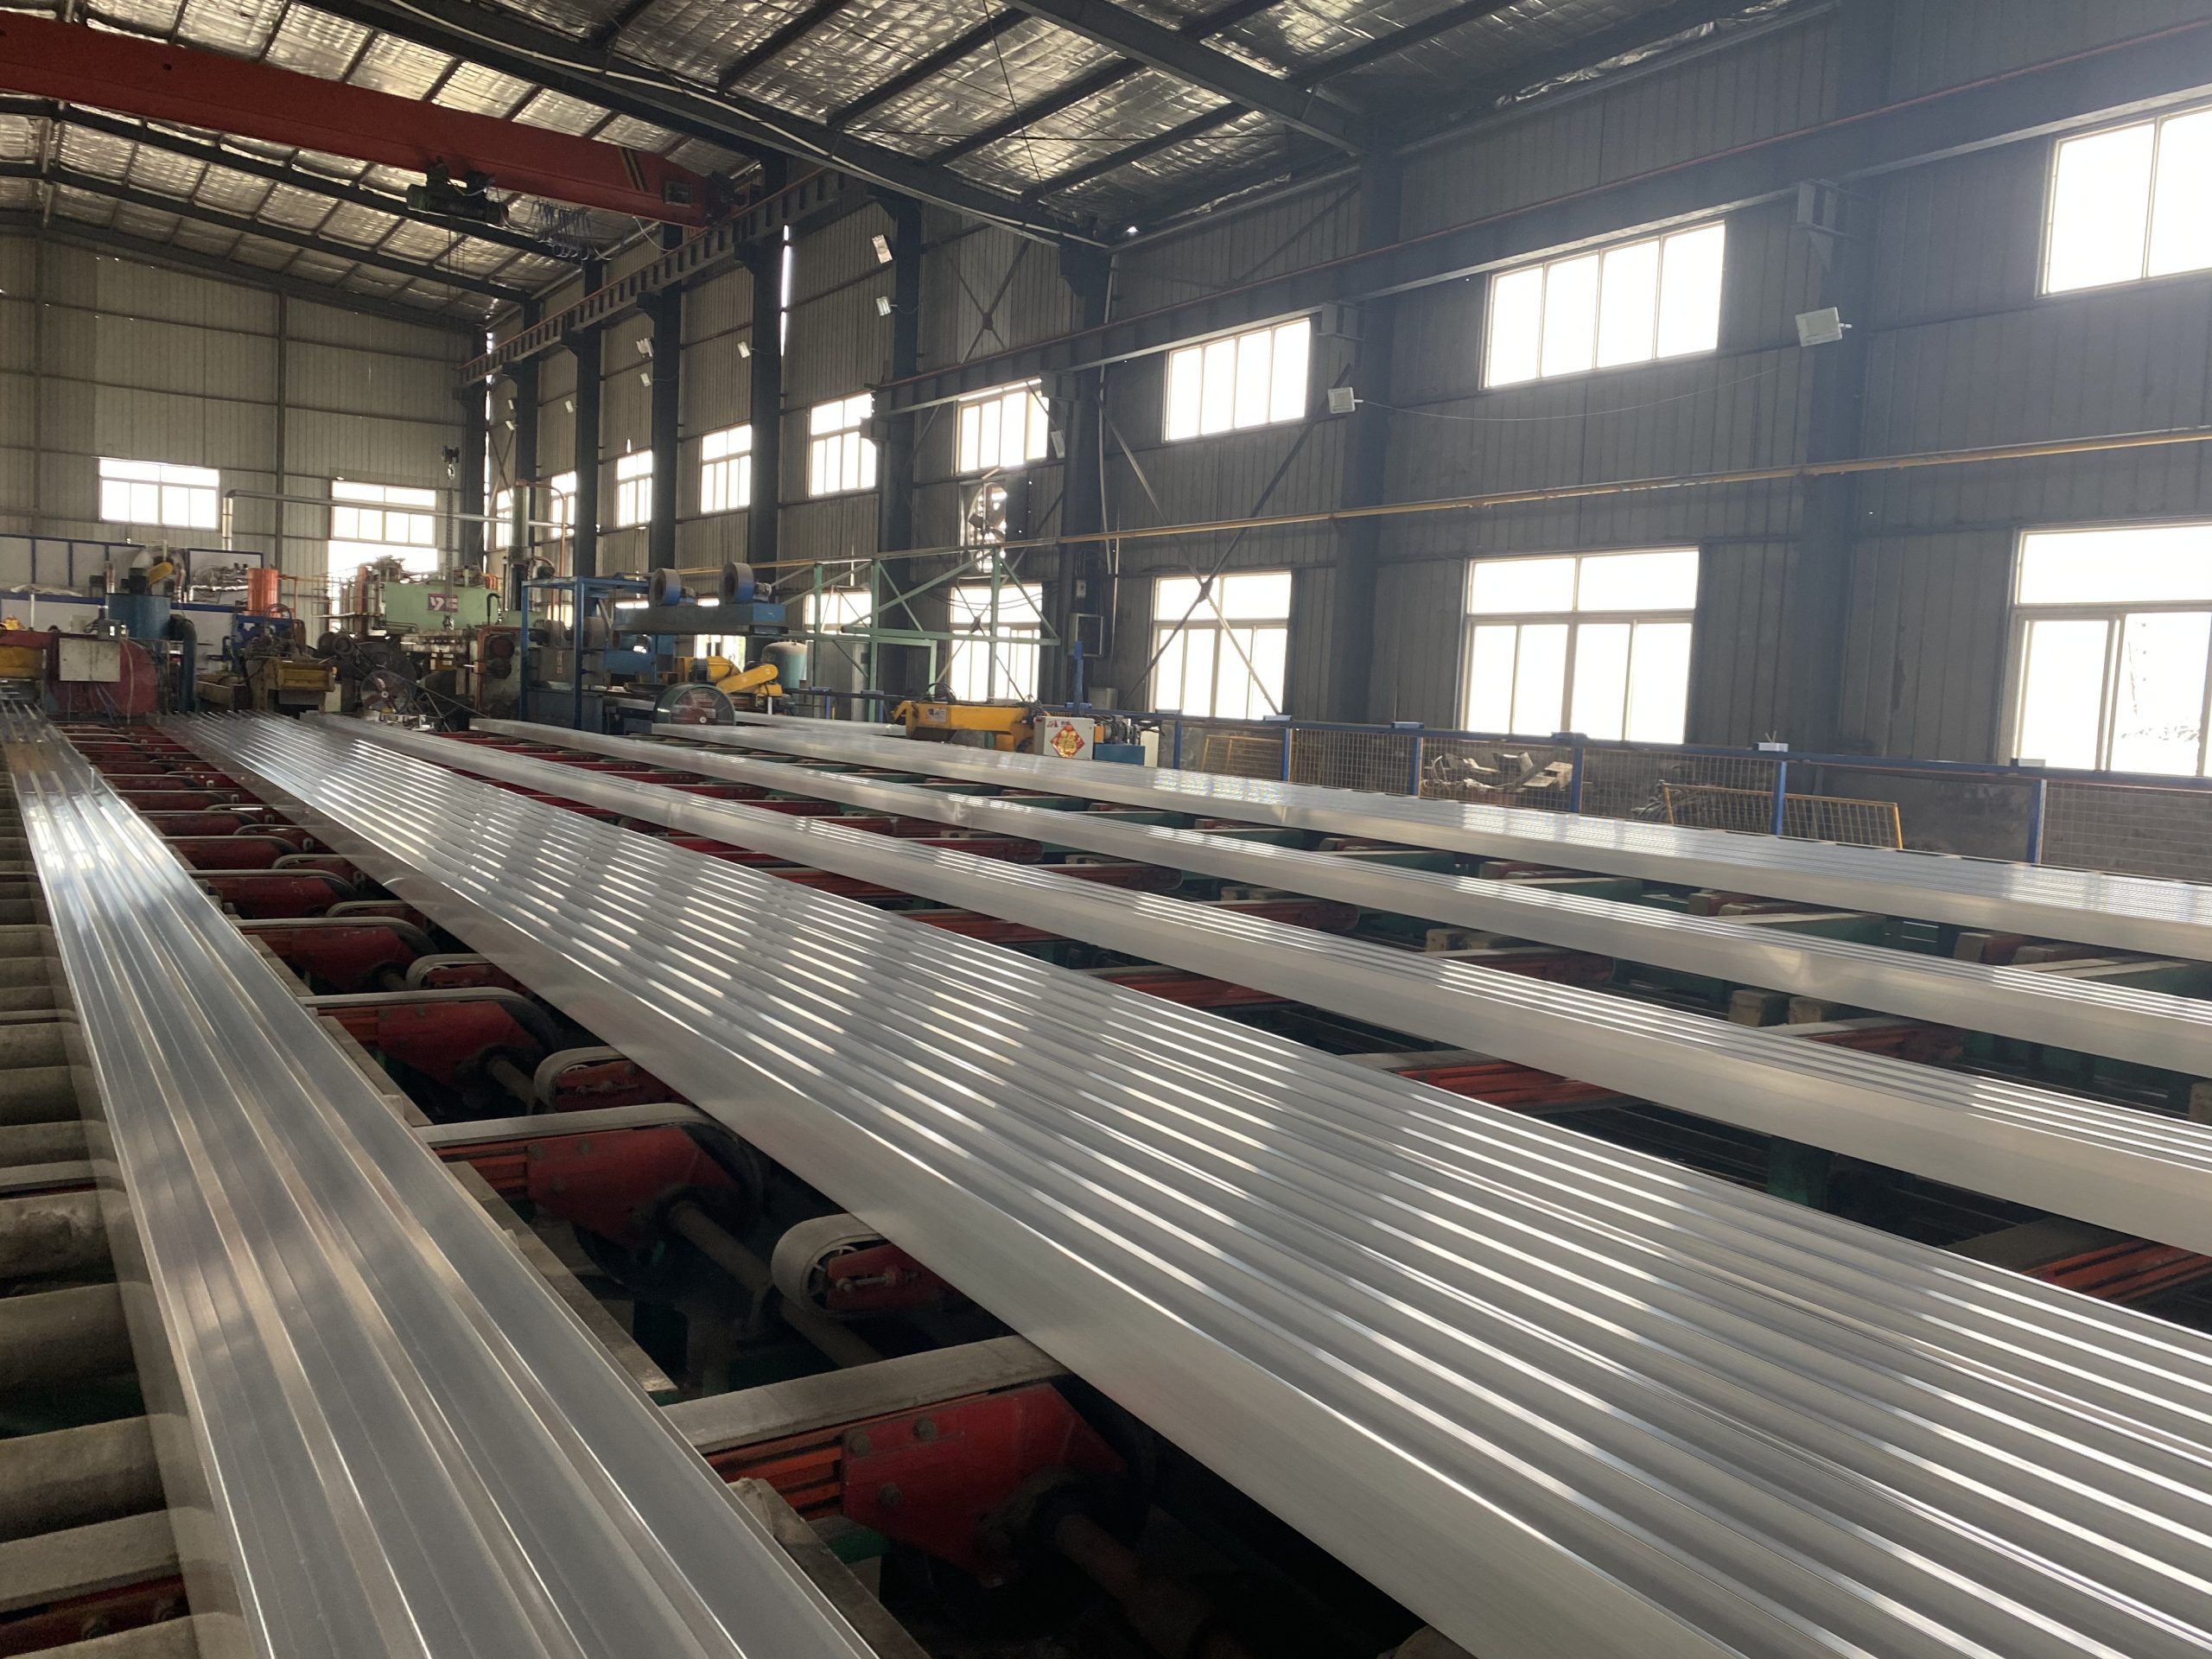 The Aluminum Association recommends prioritizing the use of sustainable materials such as aluminum